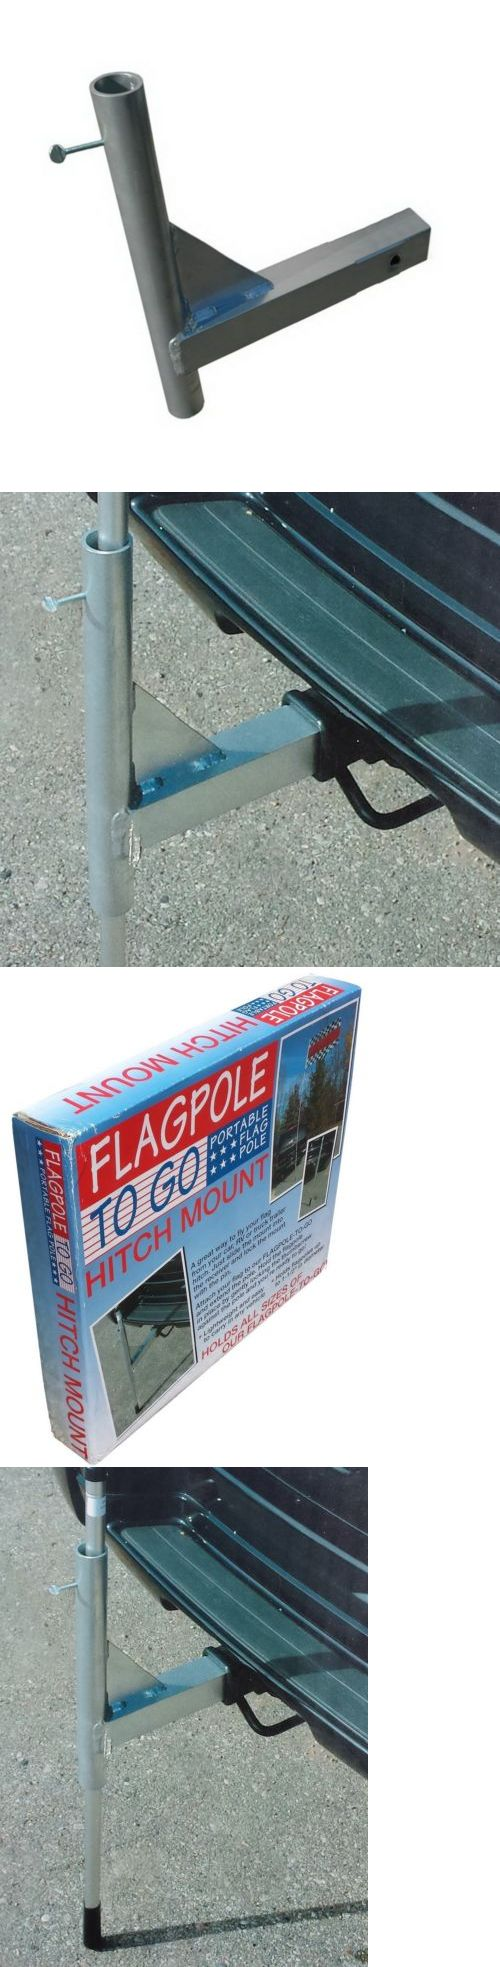 Flag Poles and Parts 43536: New Flagpole Trailer Hitch Mount Car Truck Suv Flag Pole Holder -> BUY IT NOW ONLY: $42.98 on eBay!